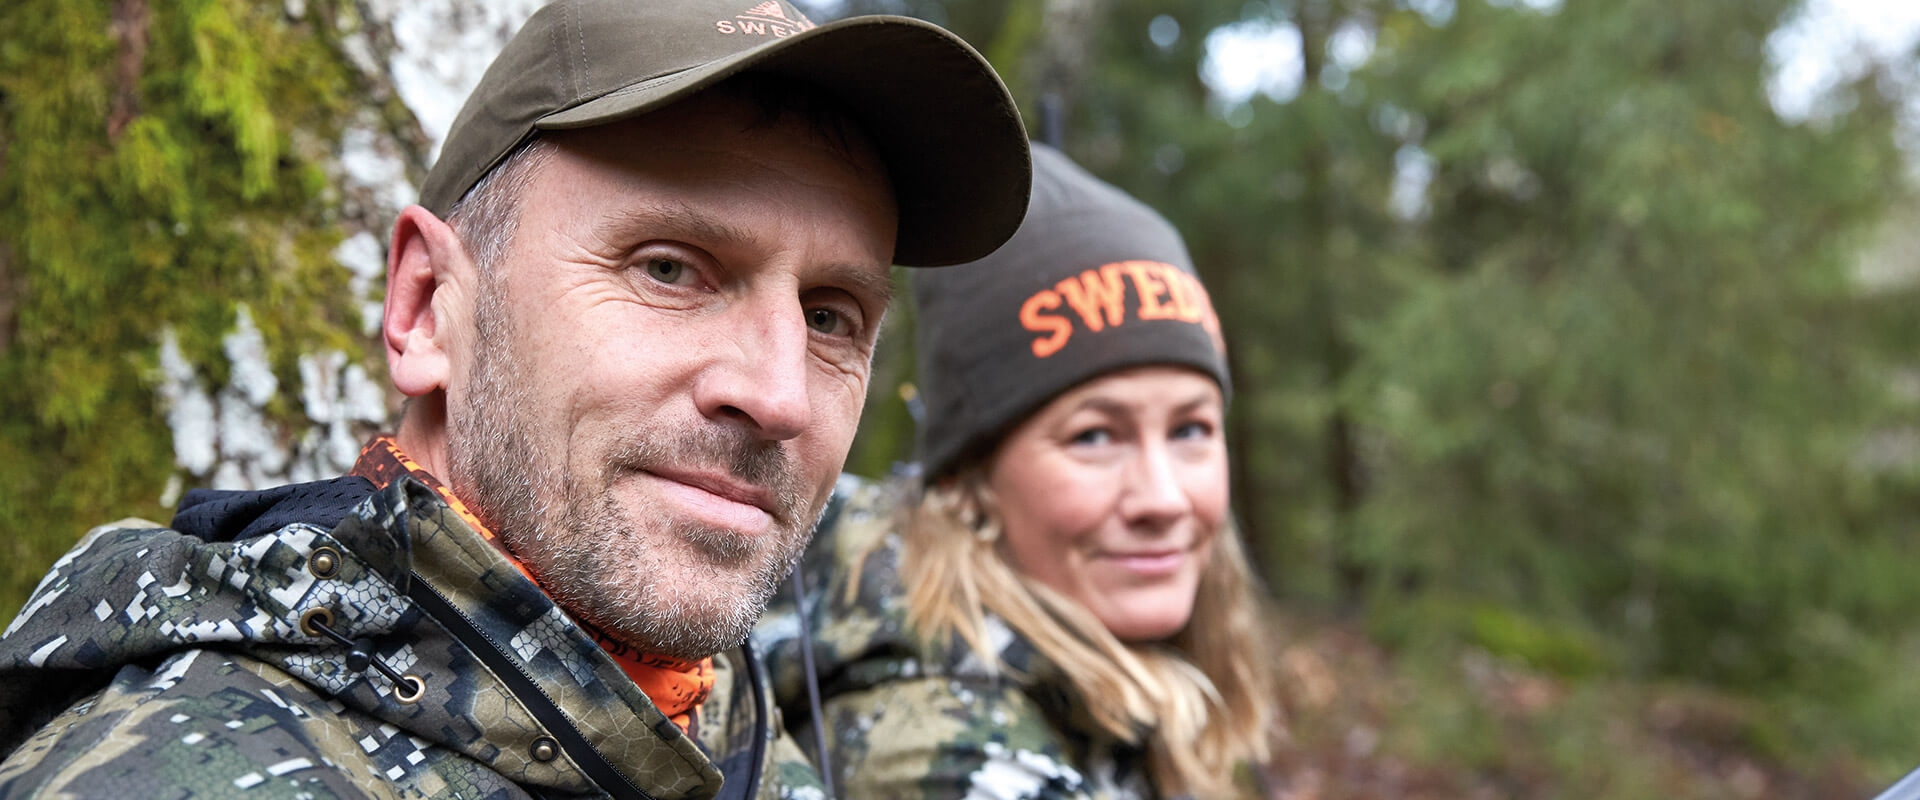 Hunters dressed in camouflage caps with DESOLVE® pattern